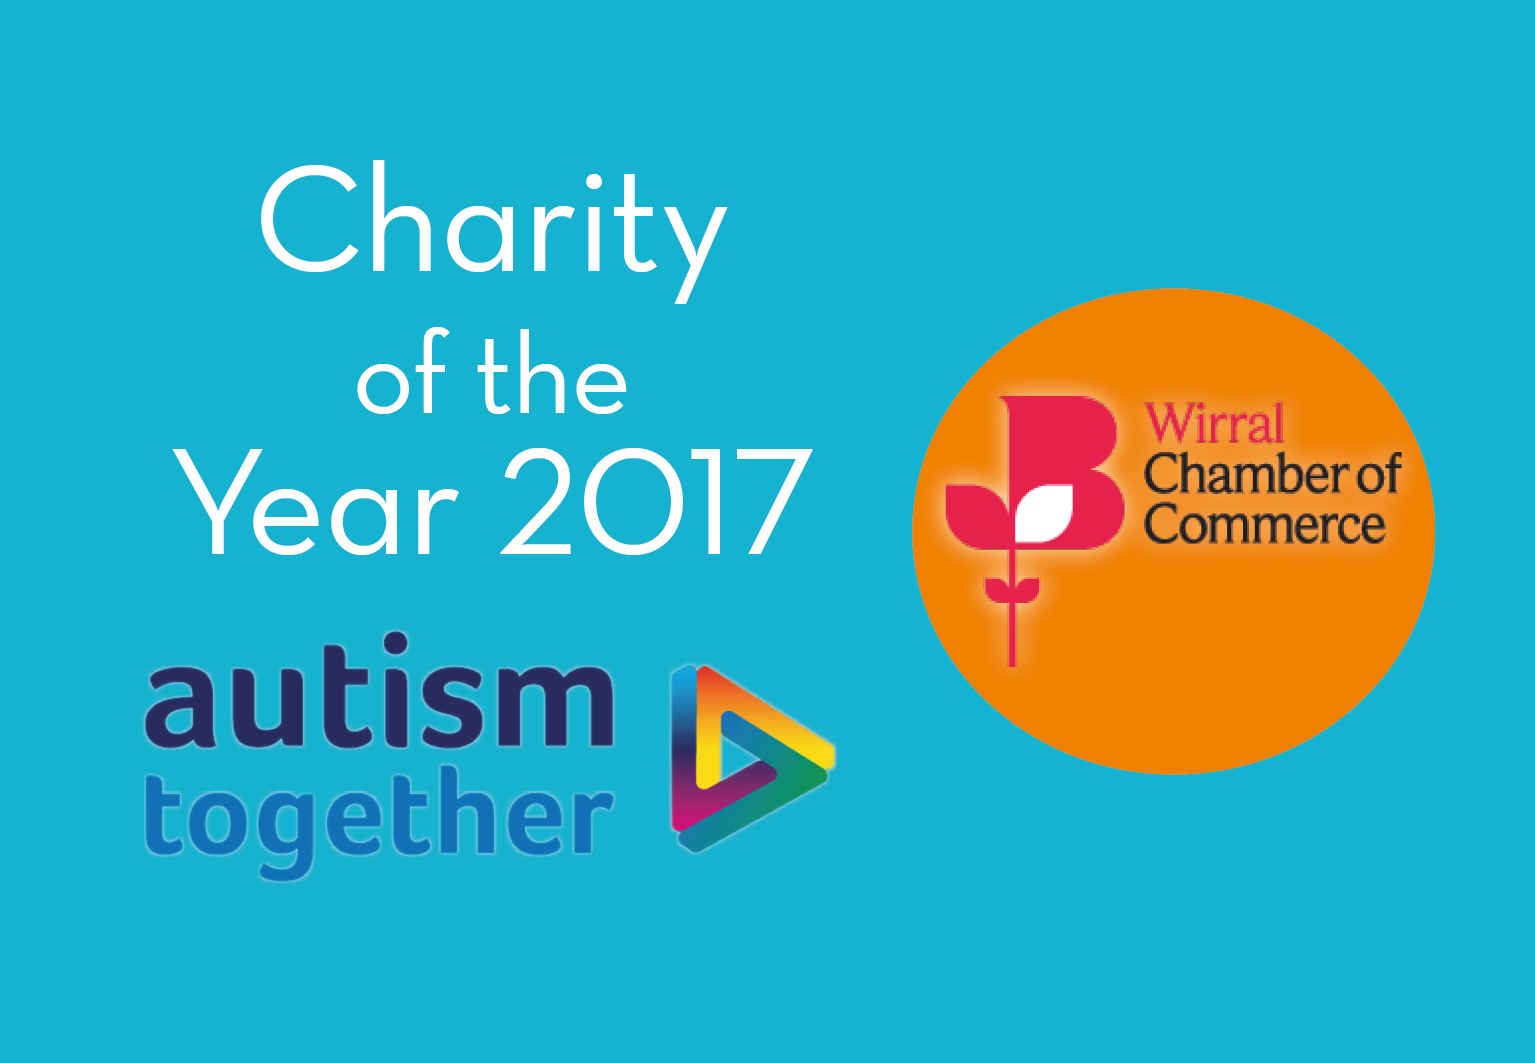 Autism Together: Chamber of Commerce Charity of the Year